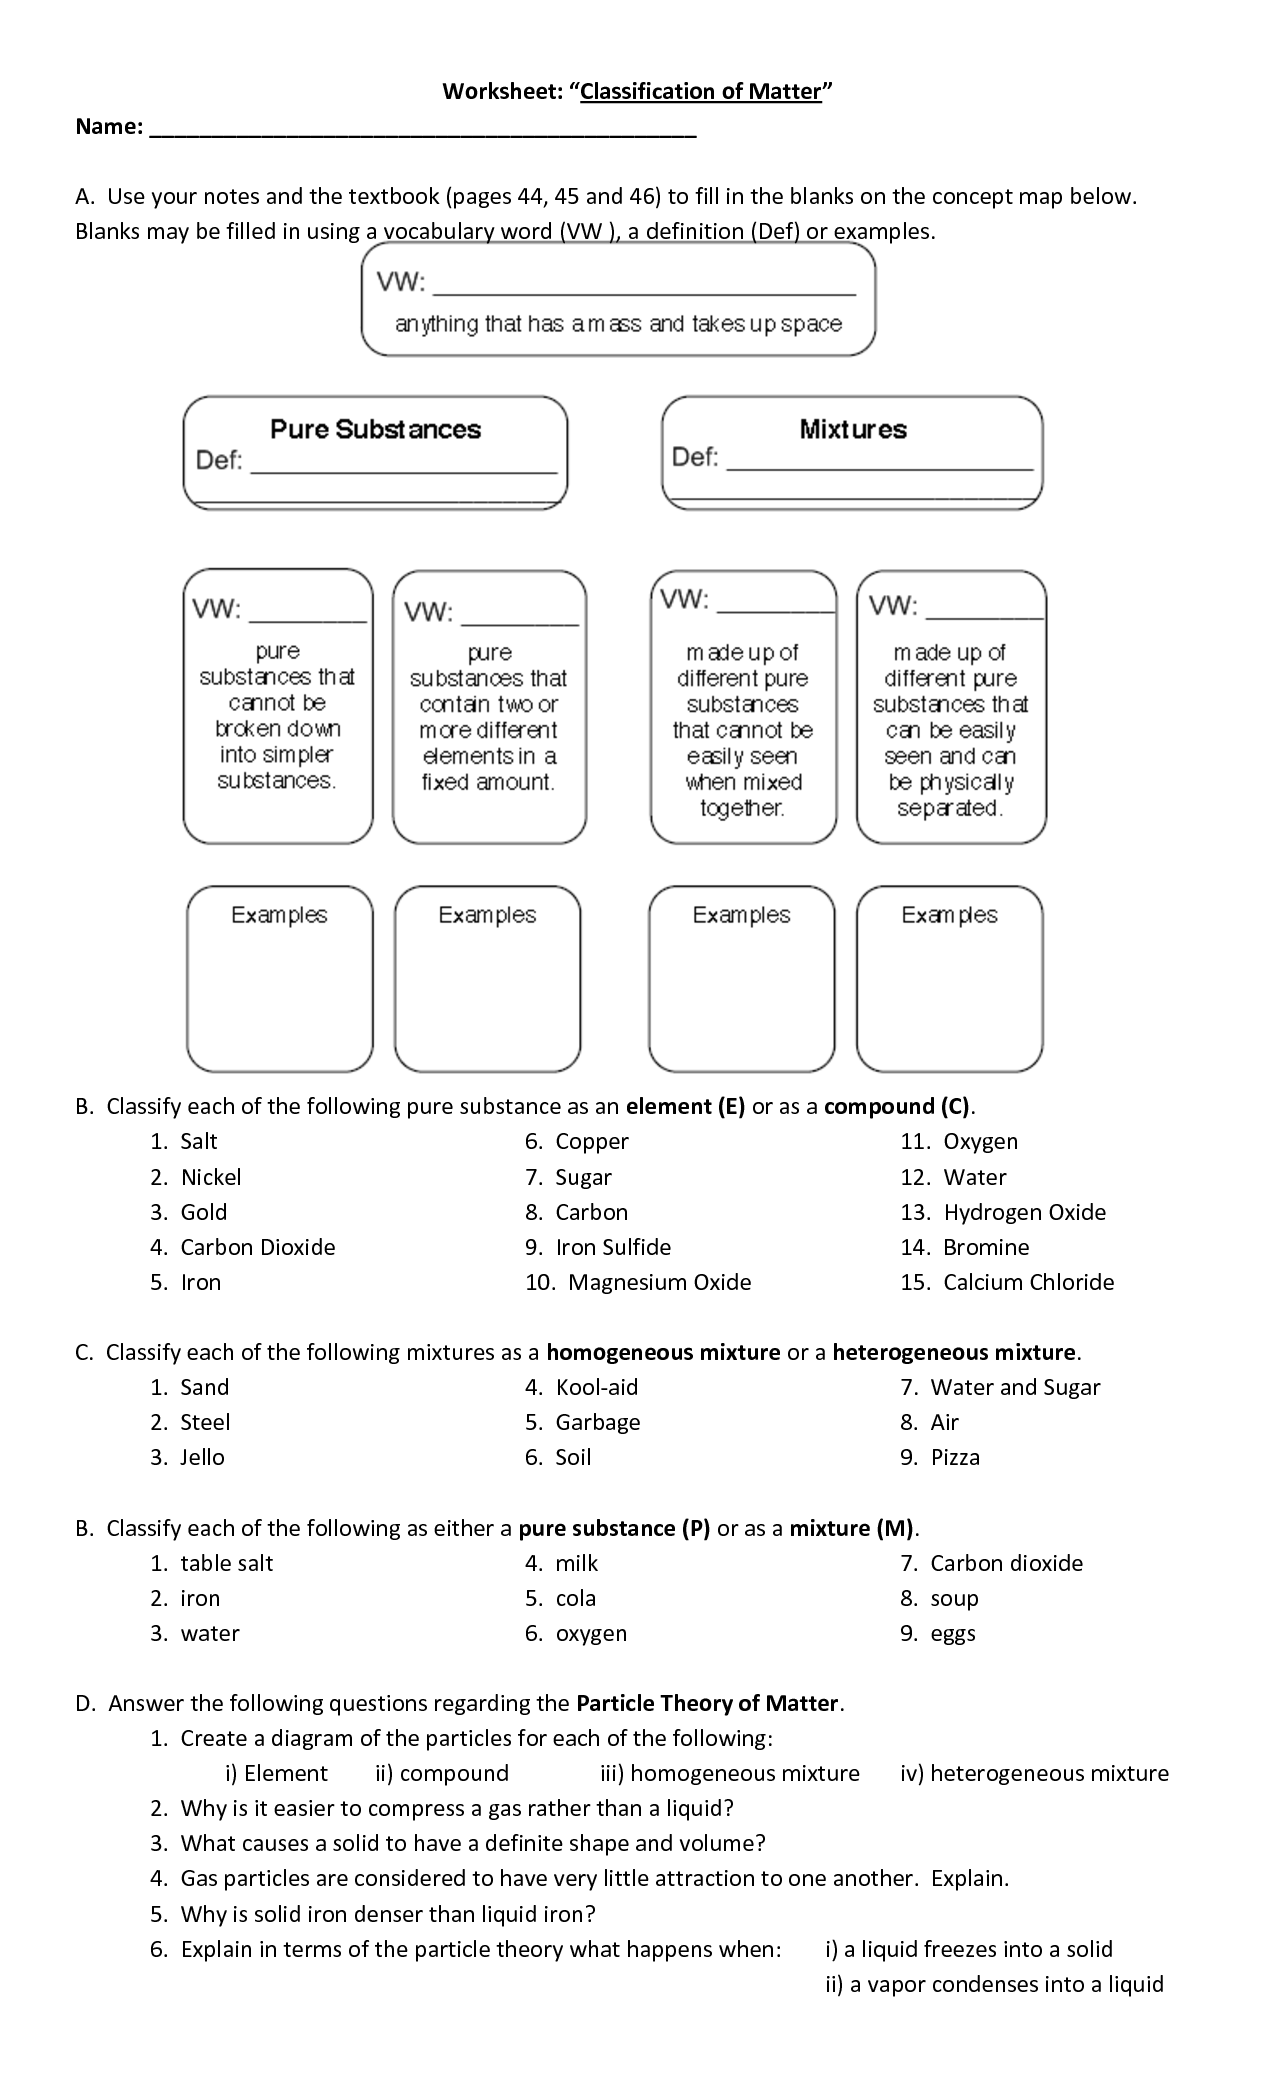 16 Best Images of Classifying Matter Worksheet  Classifying Matter Worksheet Answers